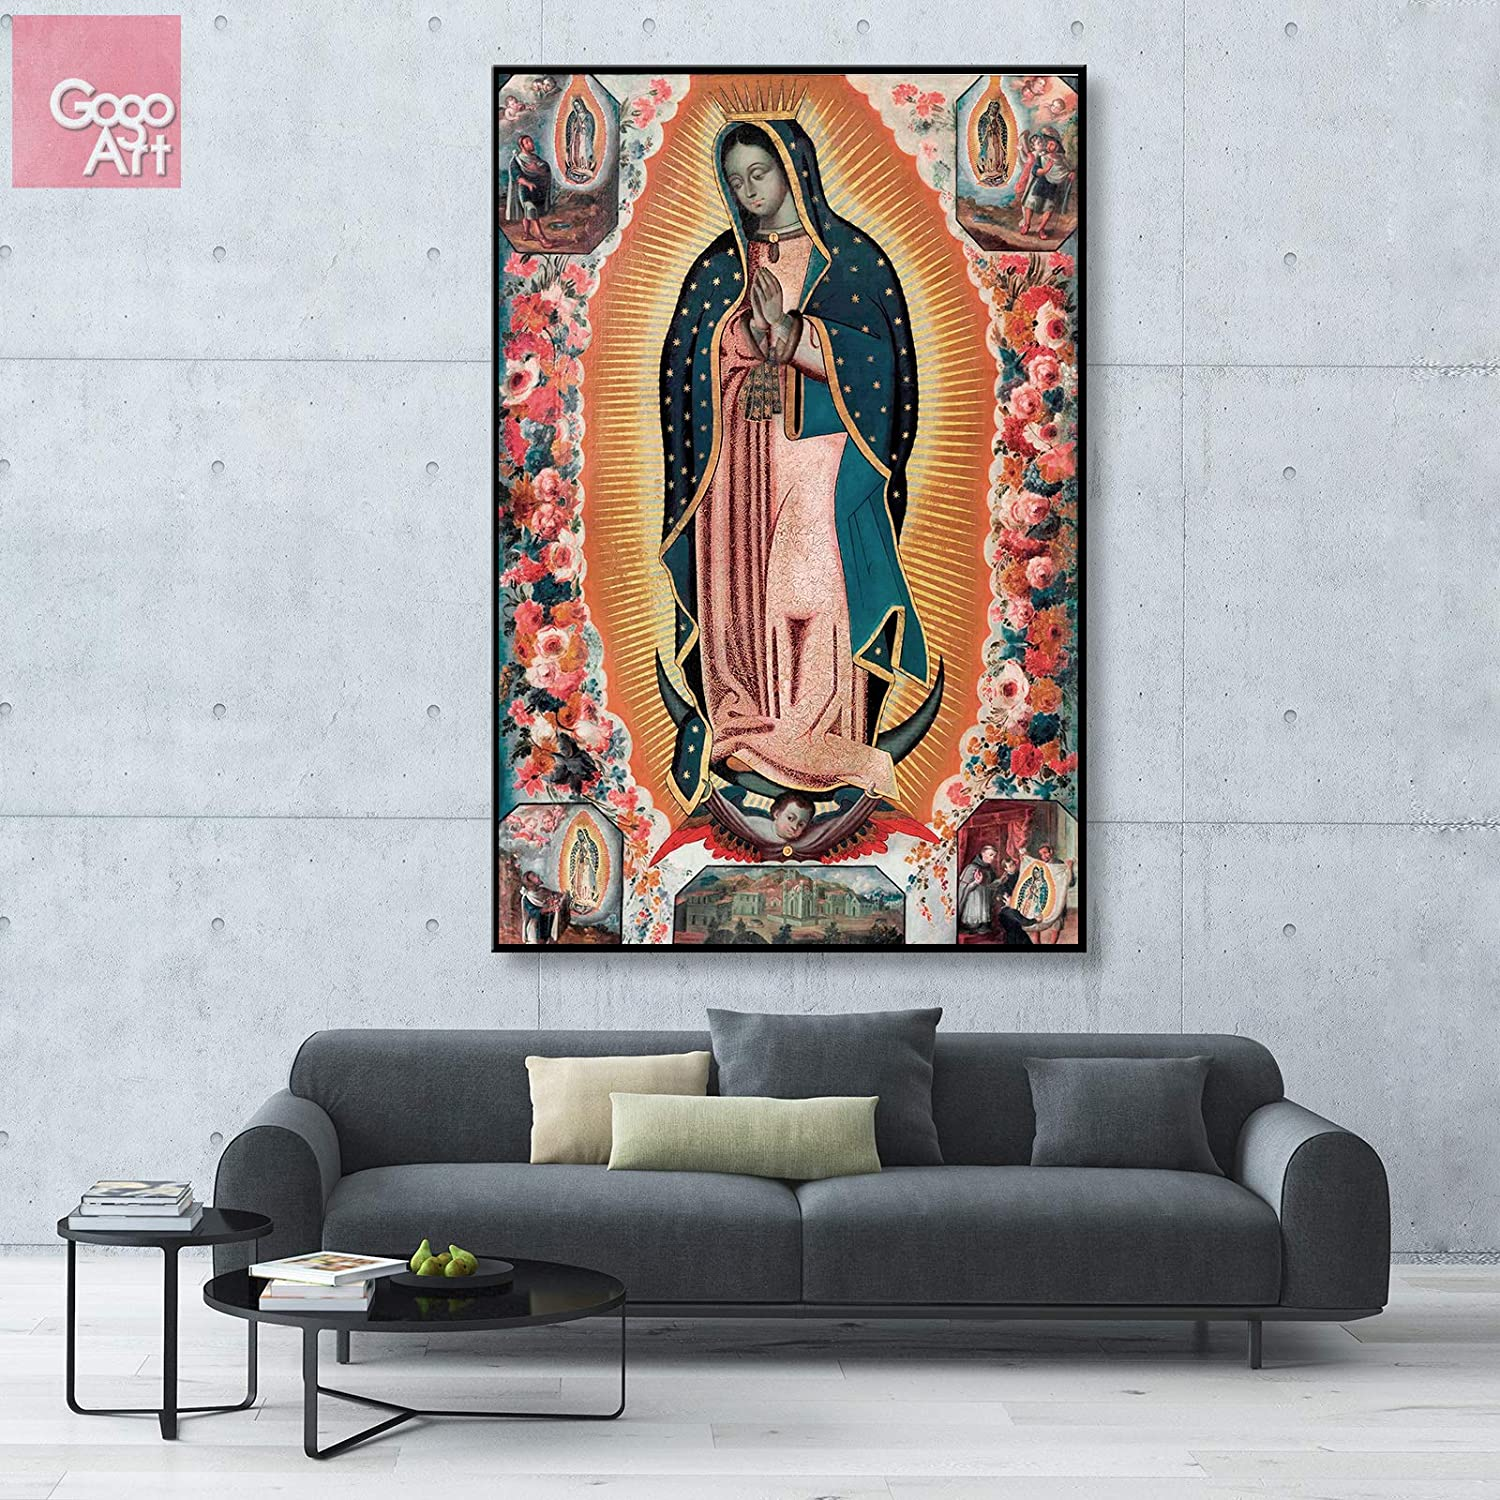 GoGoArt Roll Unstretched Canvas Print Wall Art Home Decor Photo Big Poster Virgen de Guadalupe Mexico Catholic Virgin Mary Famous Biblical Painting A-0347-1.5 (40 X 60 inch)